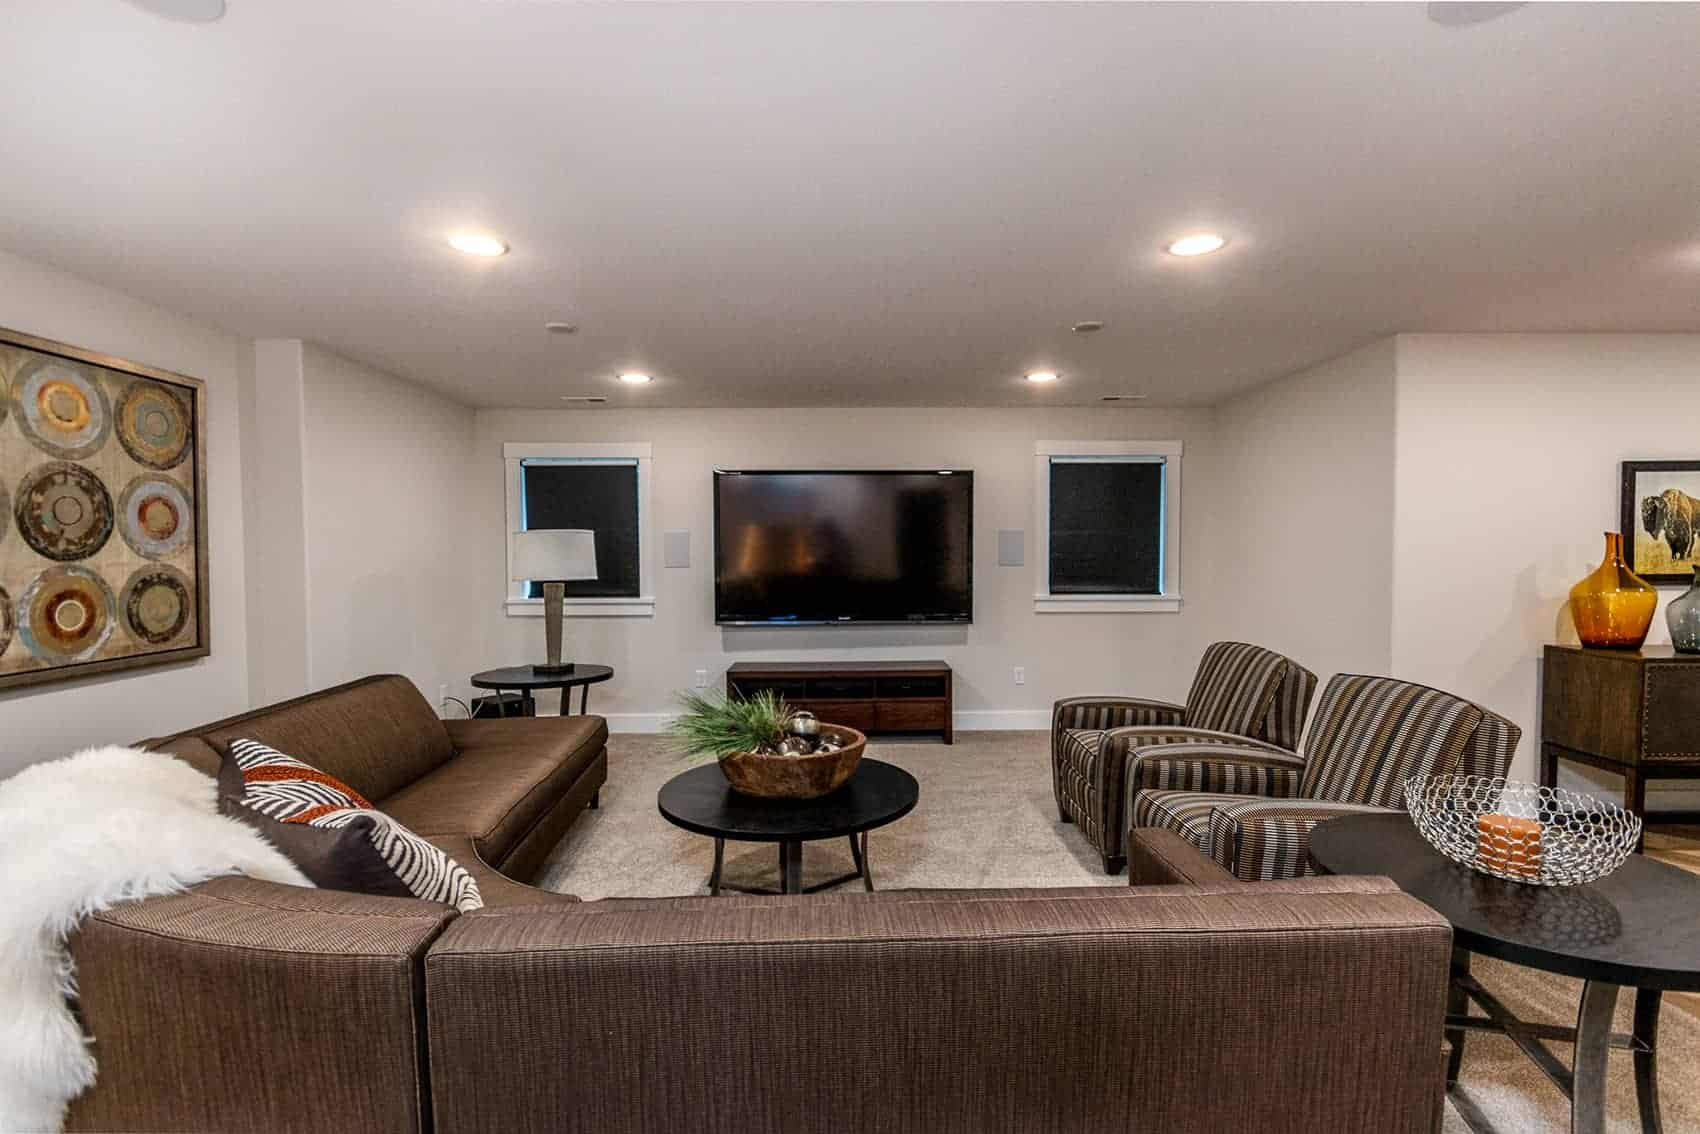 billings-residential-home-automation-lighting-audio-theater-video-family-room-interior-security